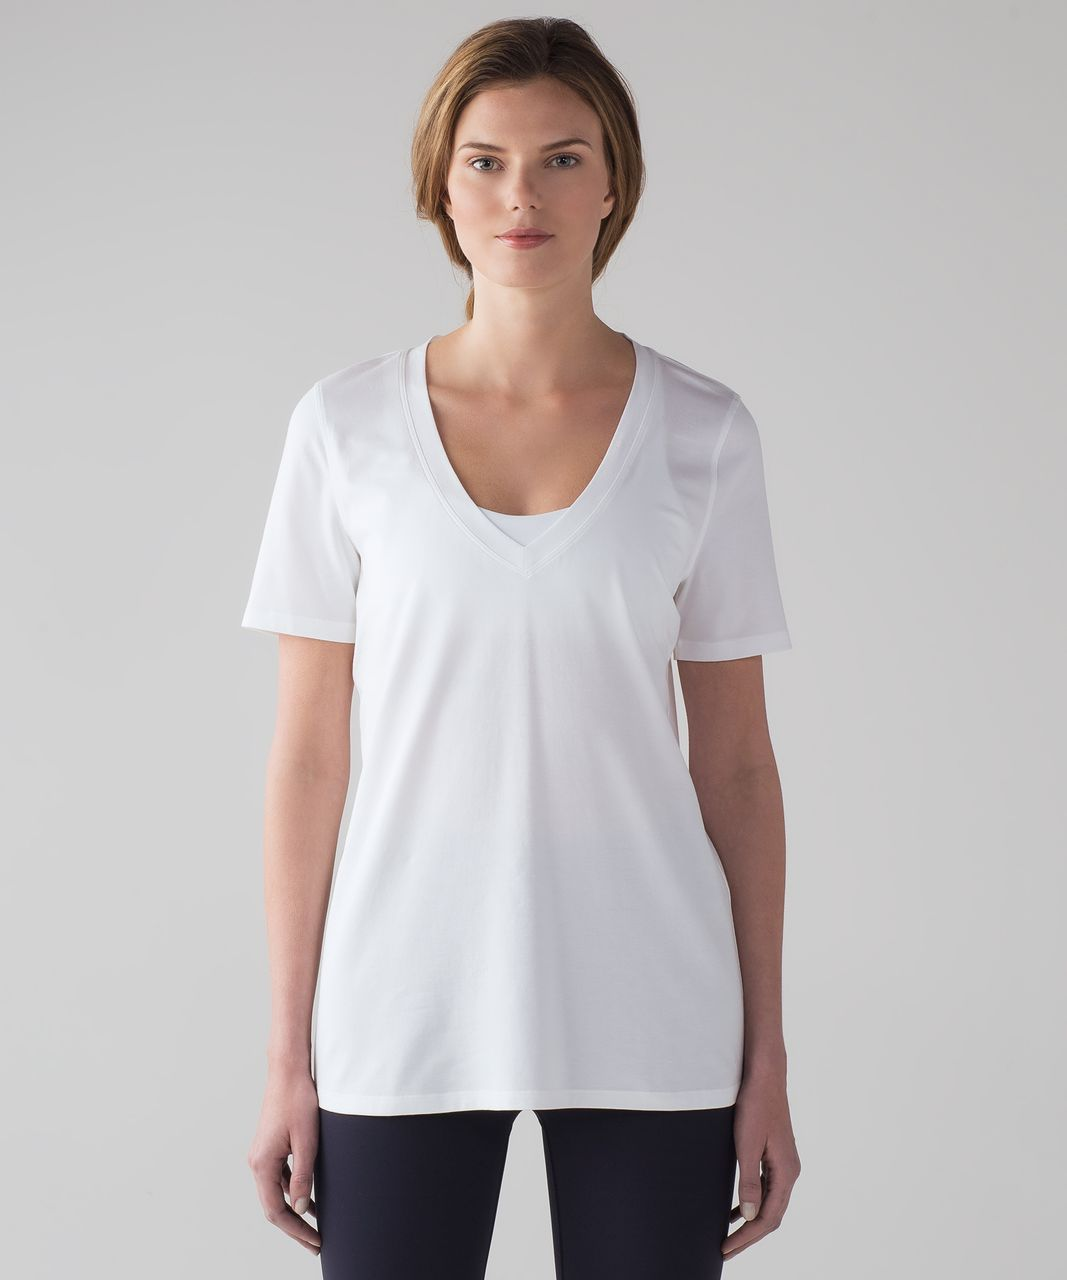 Lululemon Love Tee IV (Poly Yarn) - White